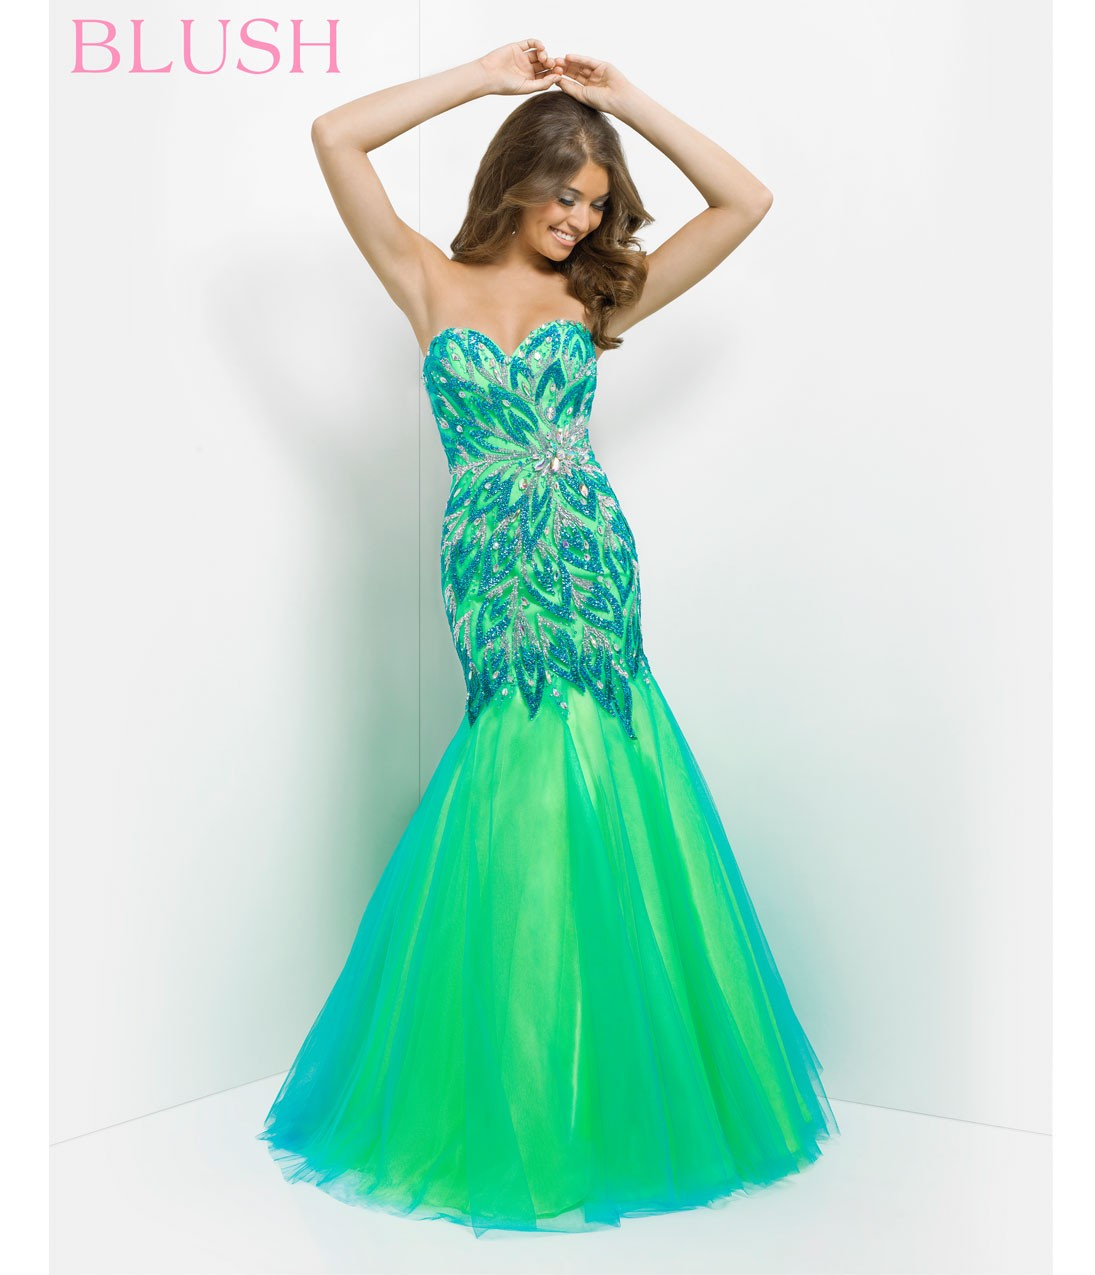 Neon Lime Green Prom Dresses – fashion dresses